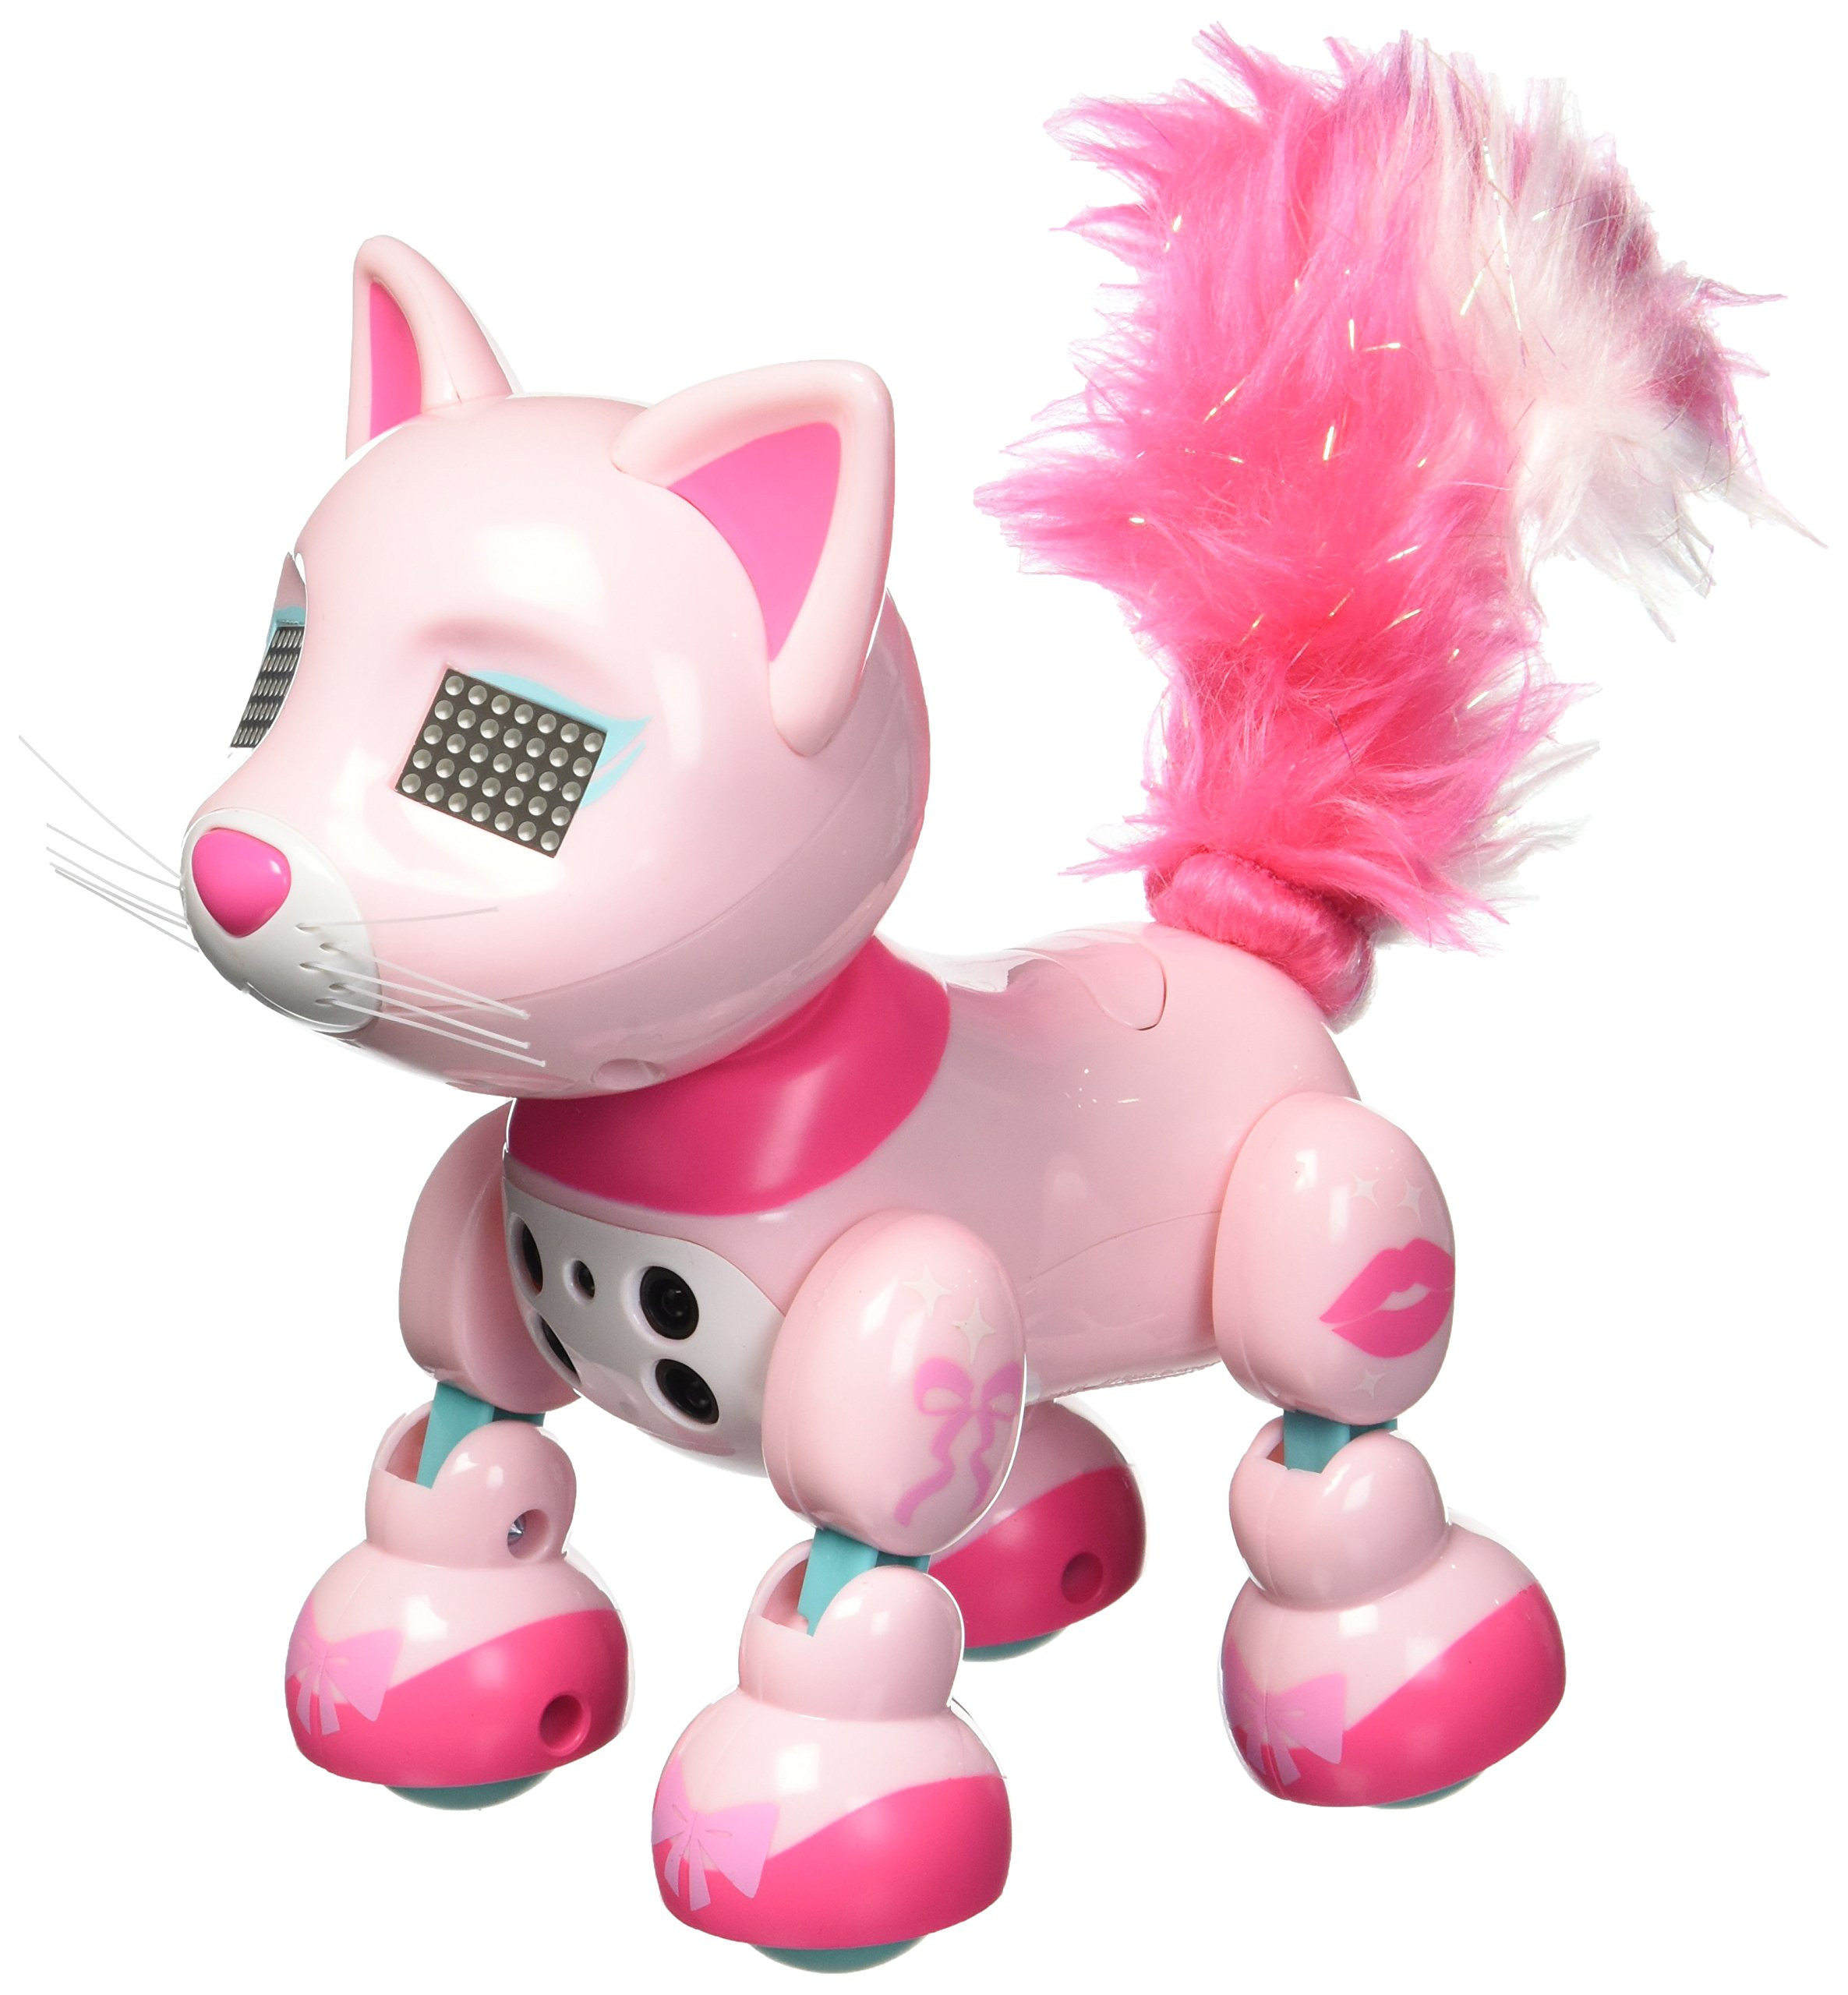 Zoomer Meowzies, Chic, Interactive Kitten with Lights, Sounds and Sensors by Zoomer (Image #1)